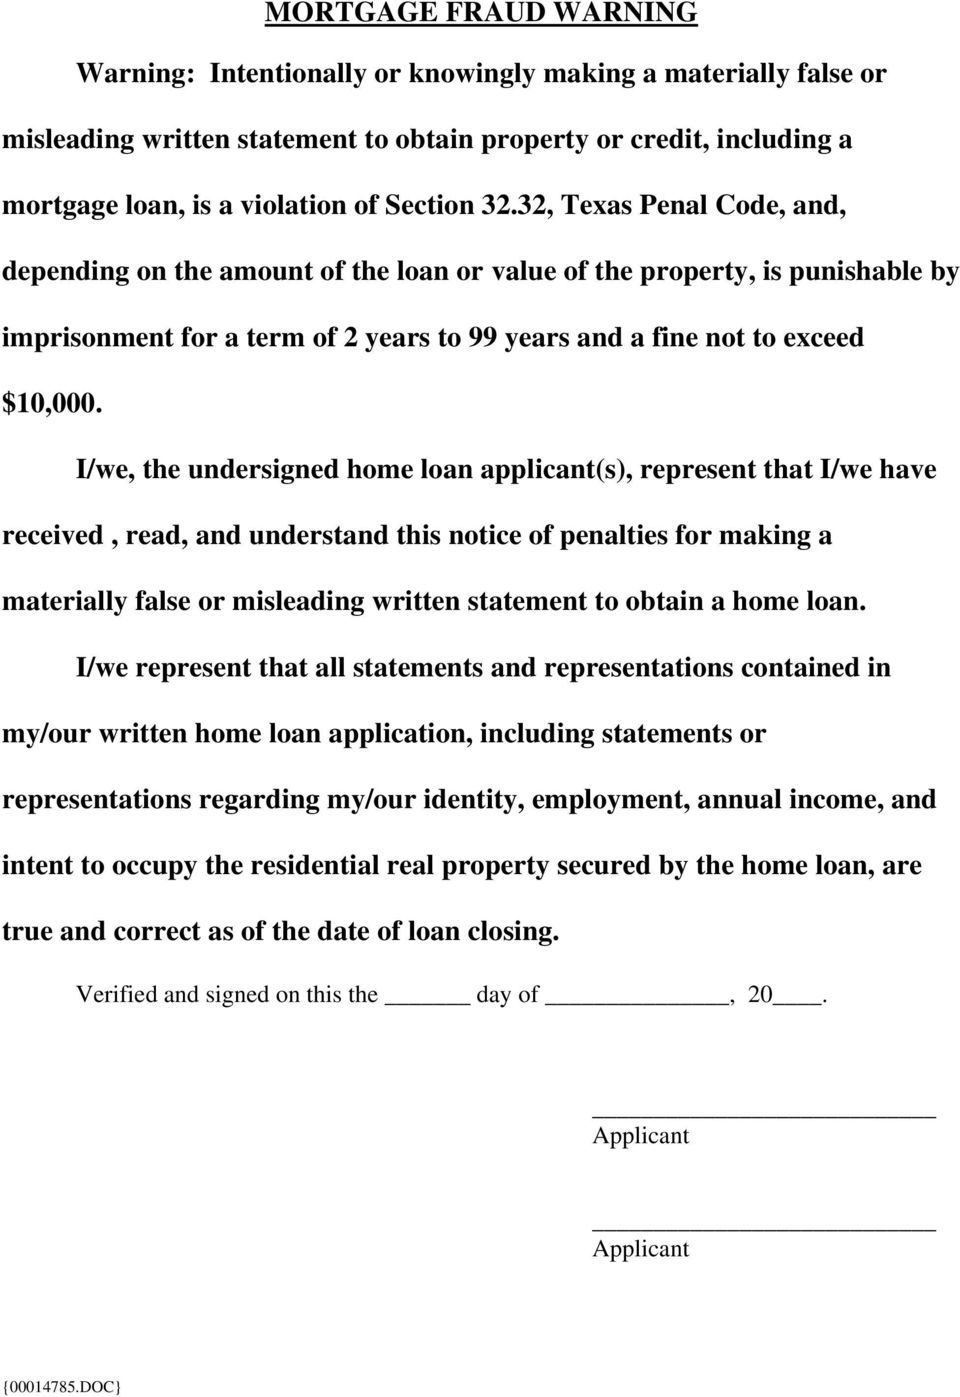 I/we, the undersigned home loan applicant(s), represent that I/we have received, read, and understand this notice of penalties for making a materially false or misleading written statement to obtain